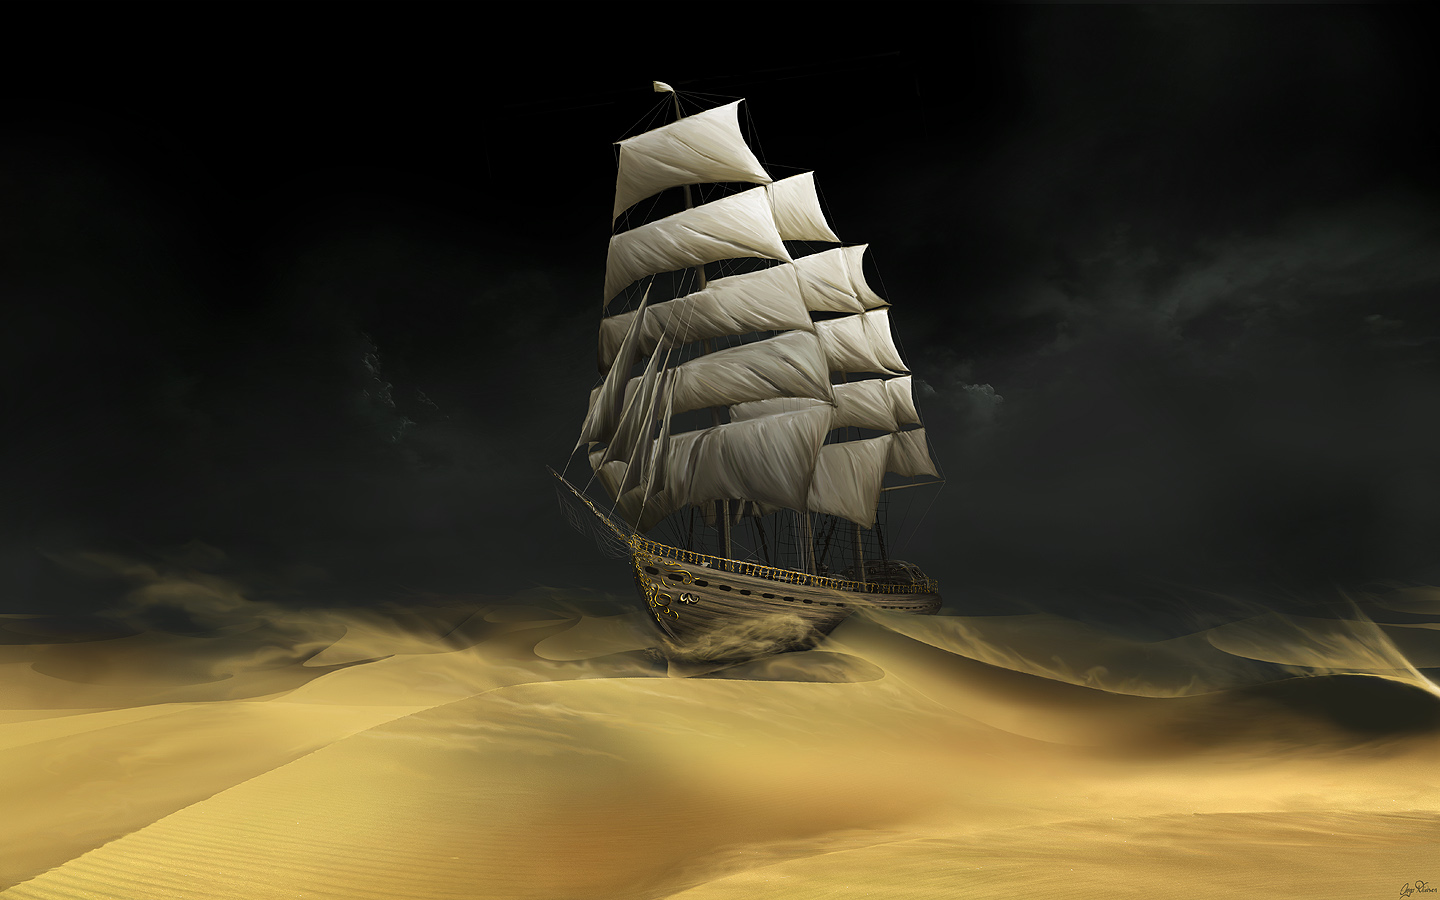 http://1.bp.blogspot.com/-OKnxOOM-JcQ/UDmbii7KPvI/AAAAAAAABQU/MTLhNhW0z94/s1600/Wallpapers-room_com___Sailing_The_Desert_by_Gate-To-Nowhere_1440x900.jpg